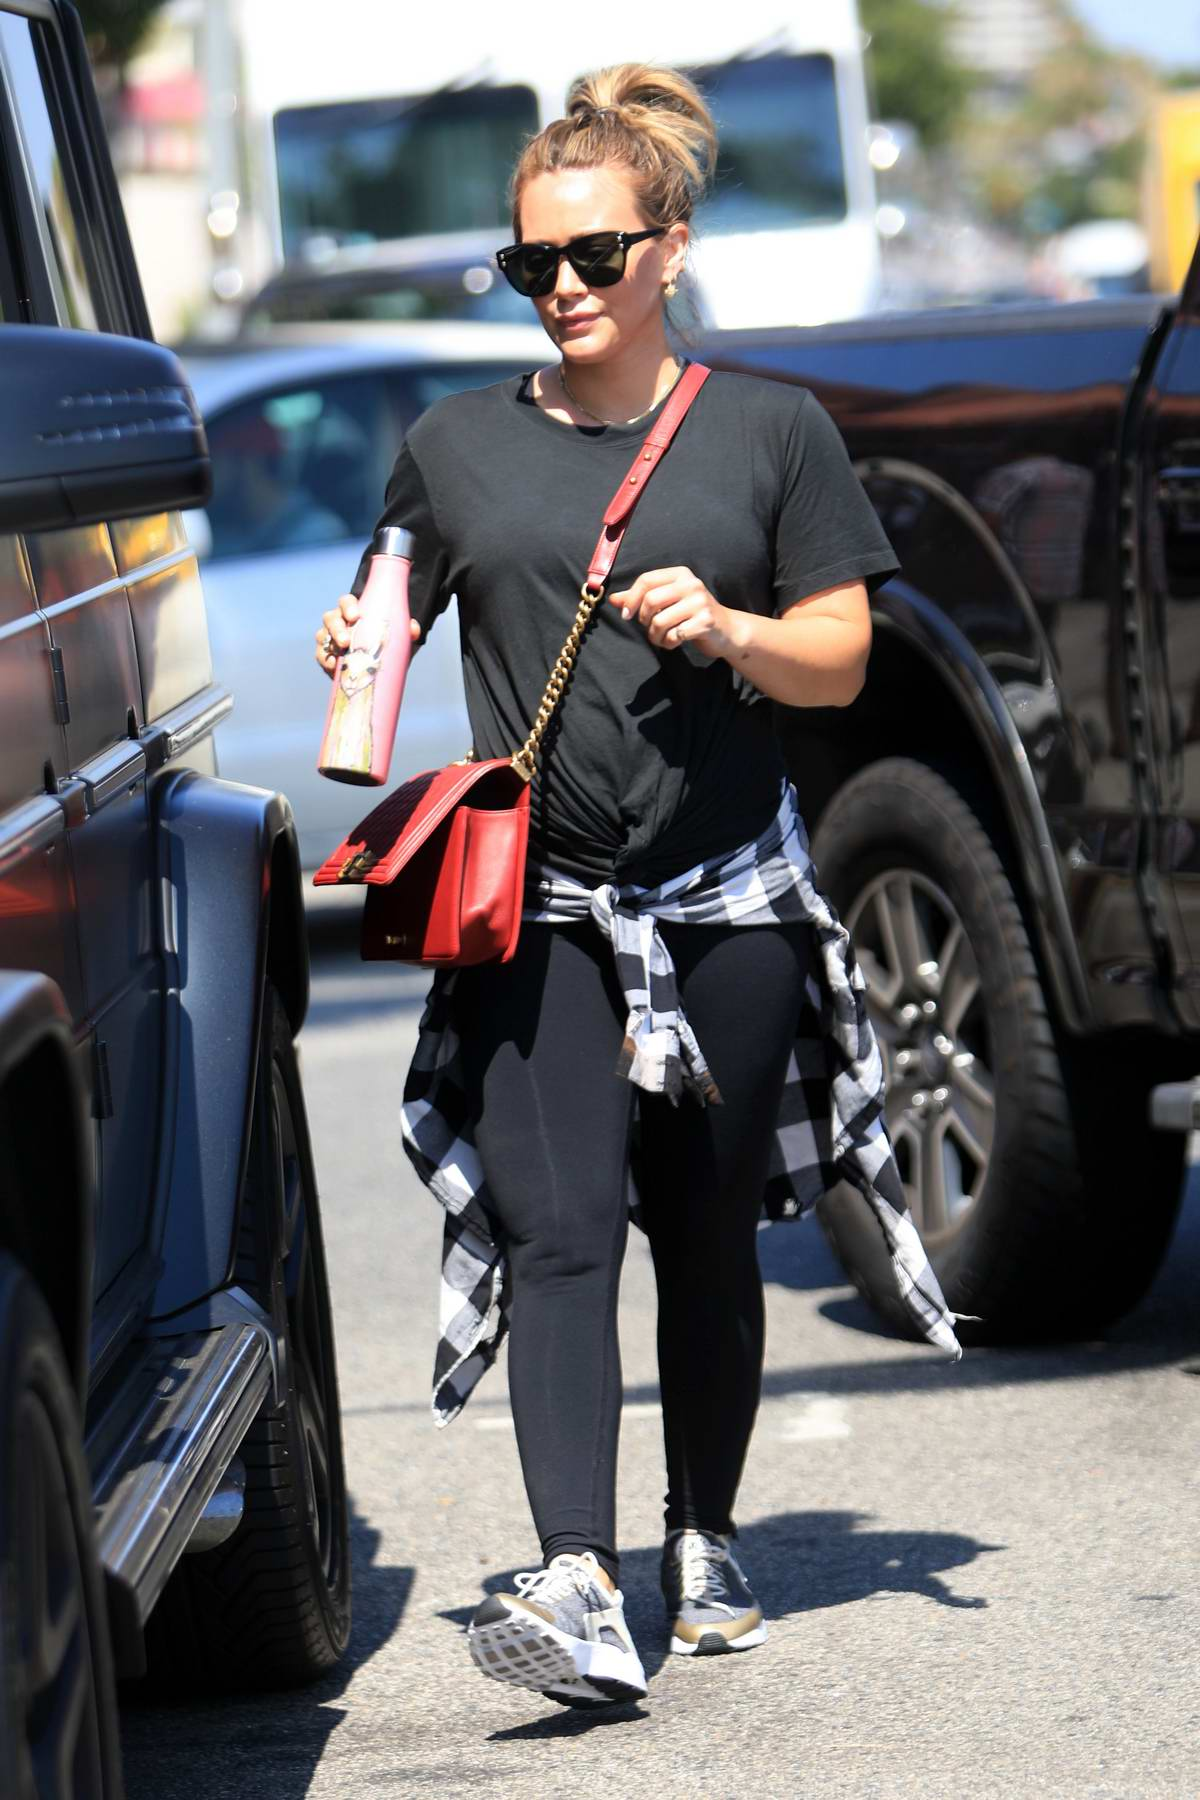 Hilary Duff dressed in all black seen leaving lunch with a friend in Los Angeles